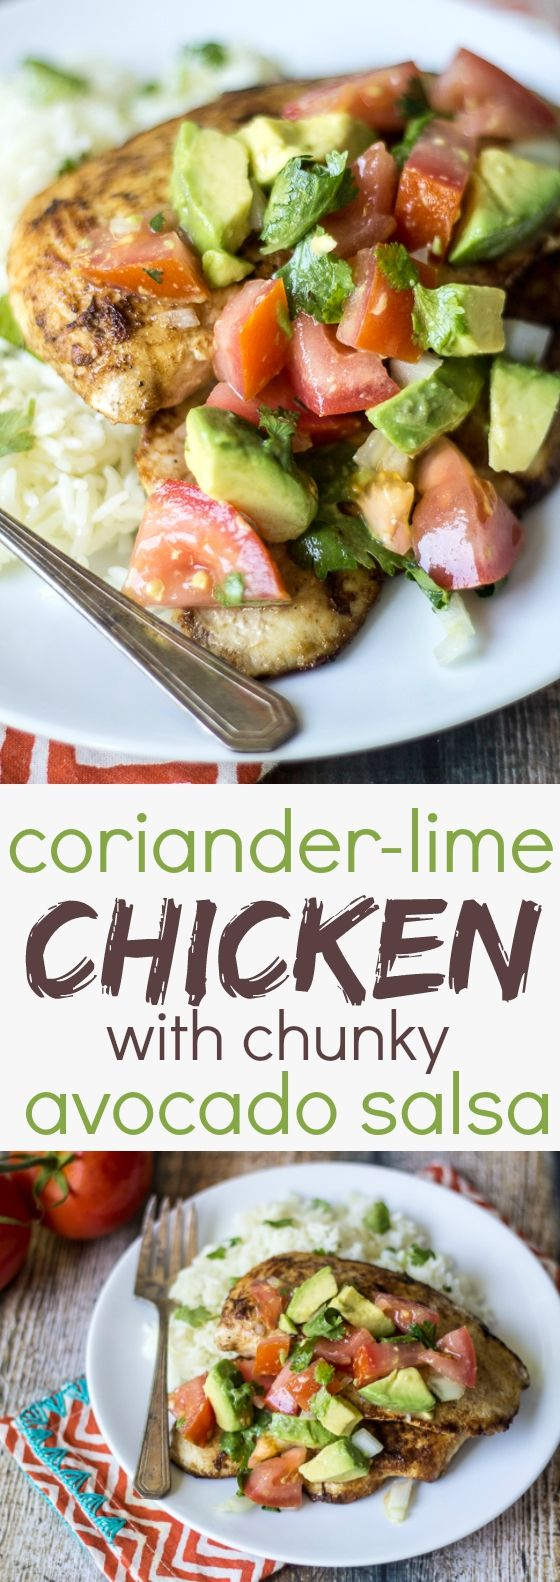 Chicken breasts spiced with ground coriander and fresh lime juice pair perfectly with this chunky avocado and tomato salsa!